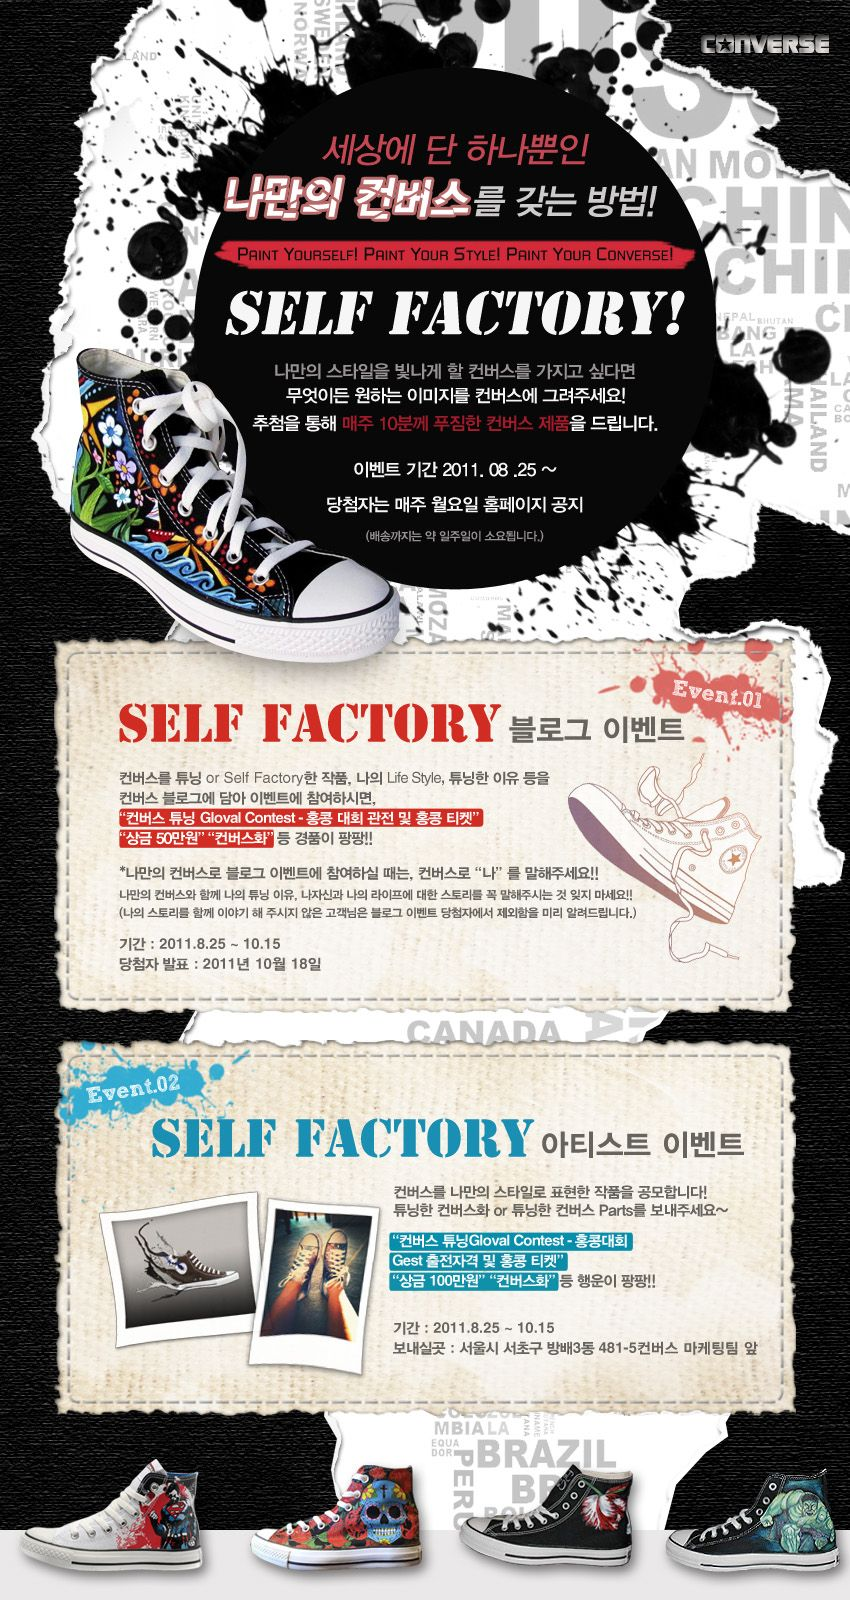 Promotion Page Design @ Self Factory _  By - Bruce _ Design Craft Movement Design Request : info@dcmov.com